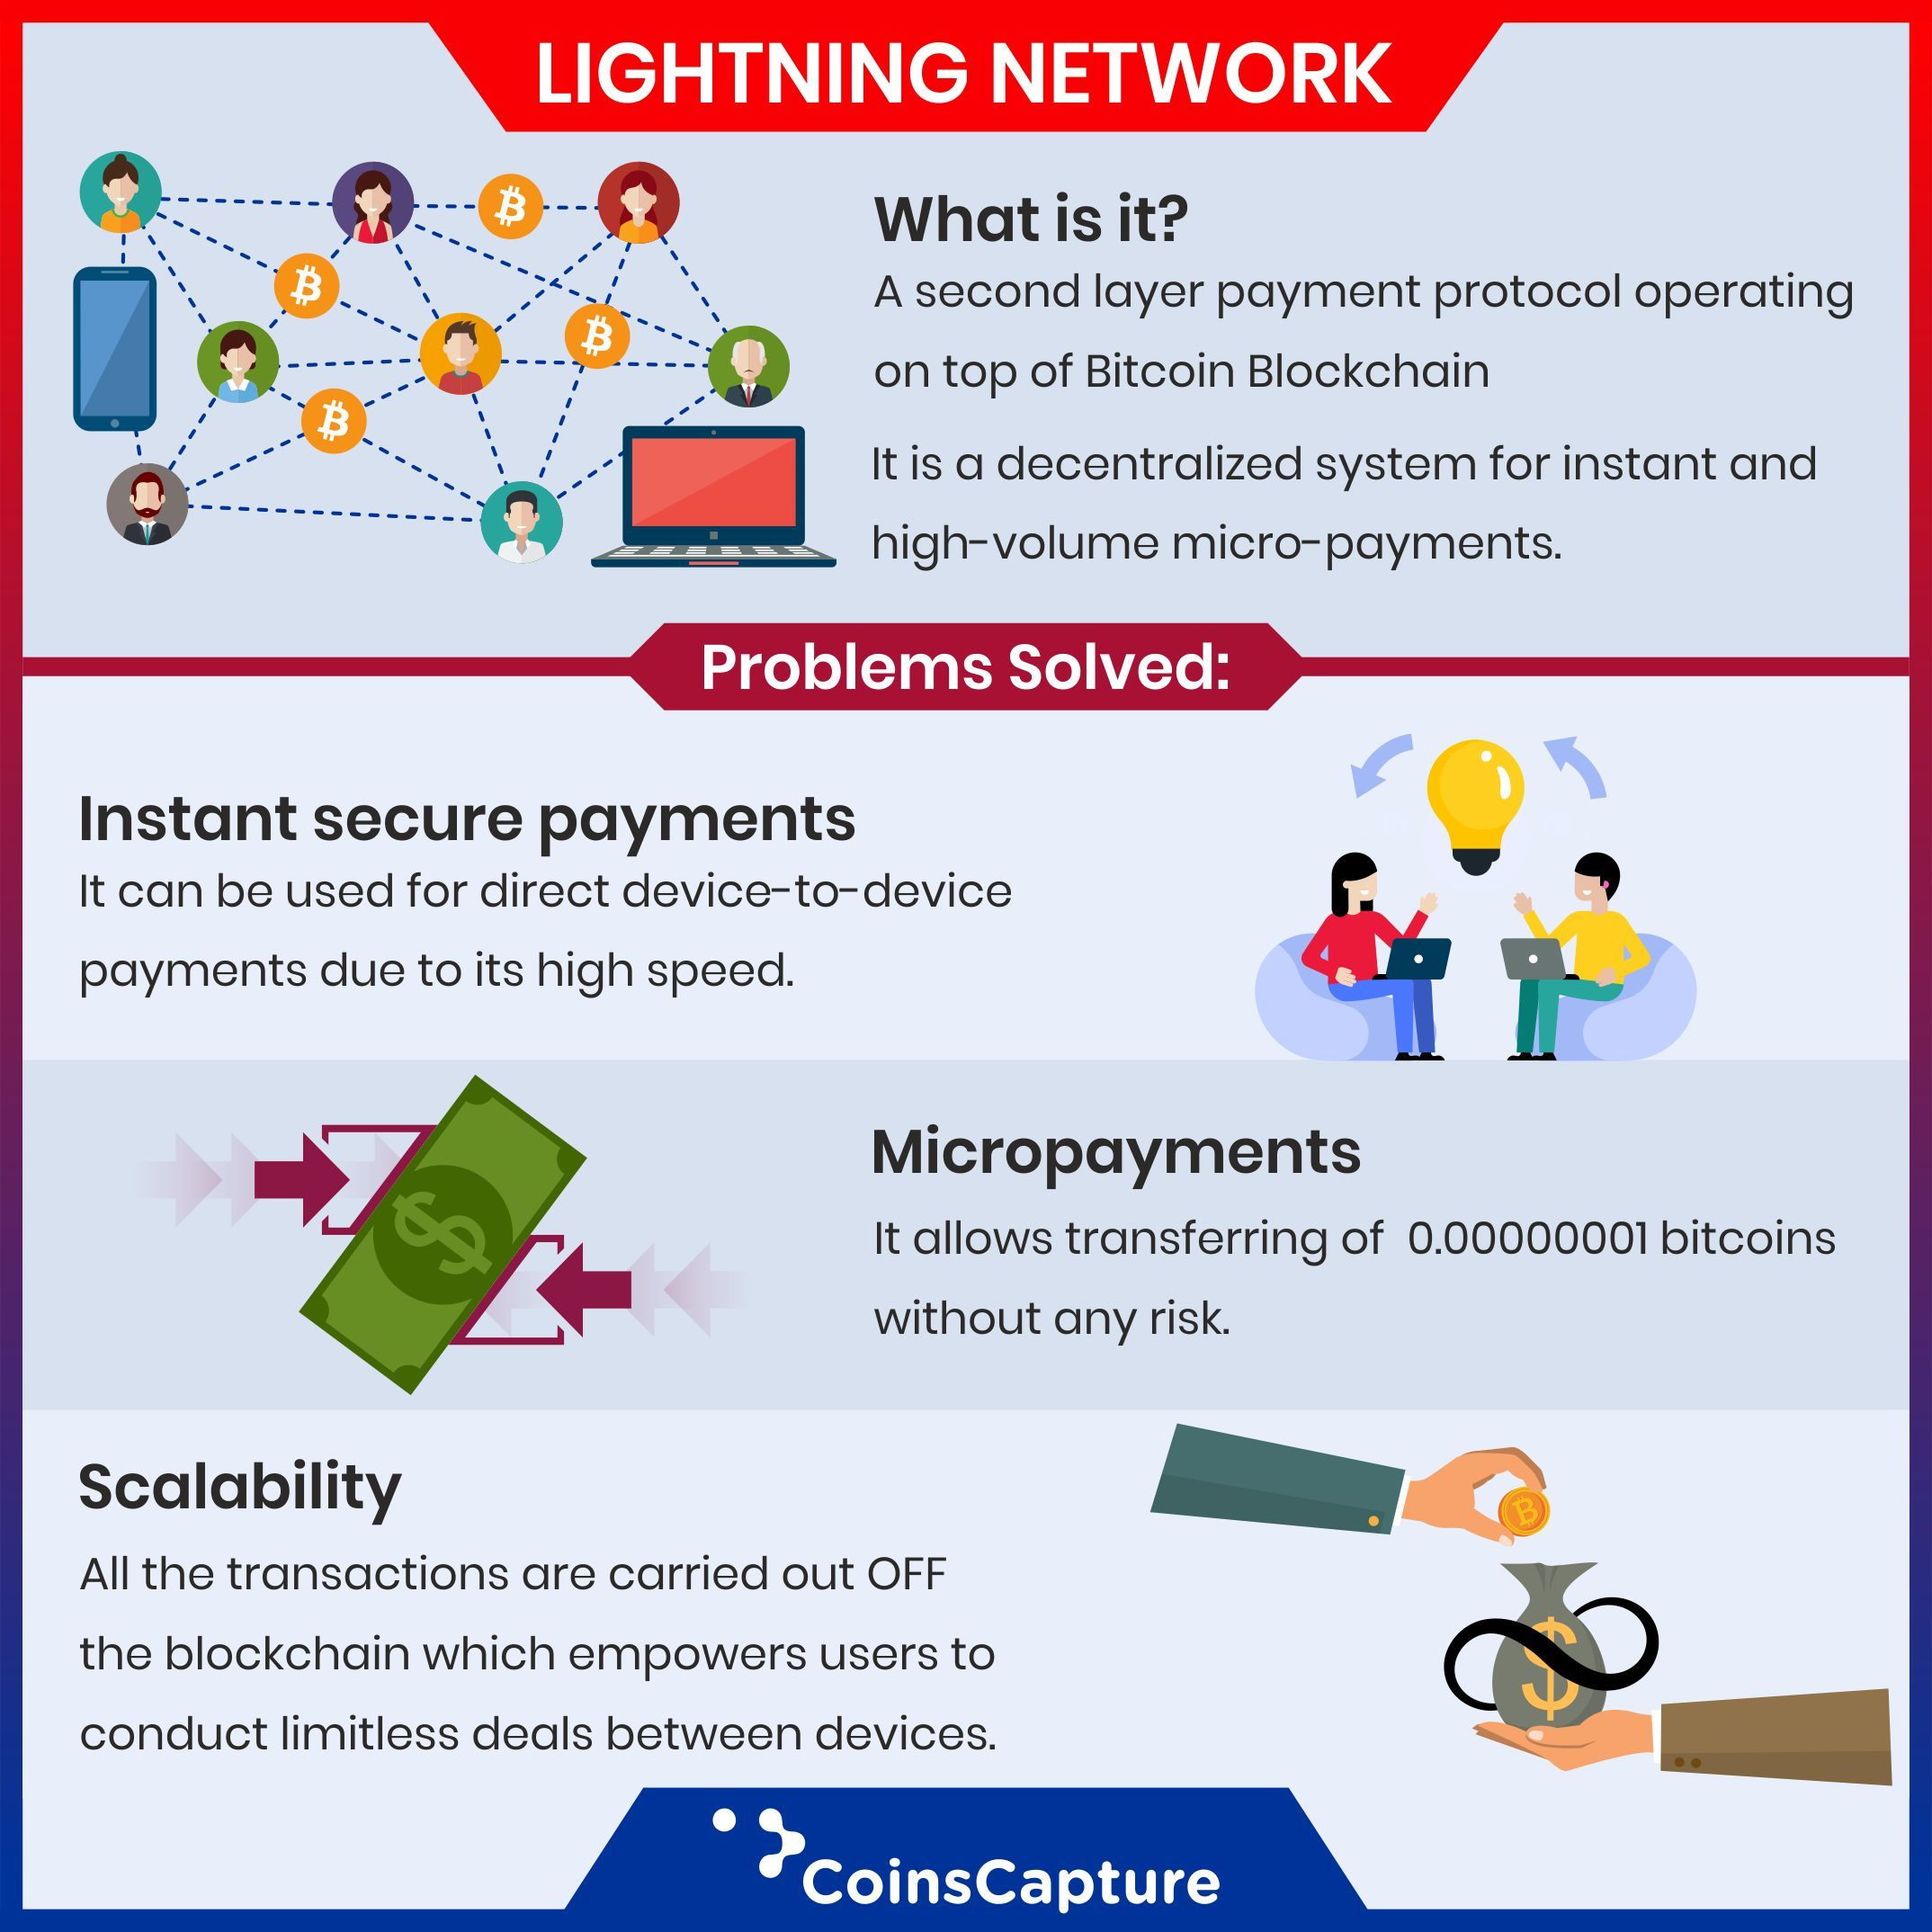 Advantages of Lightning Network   #advantages #infographic #crypto